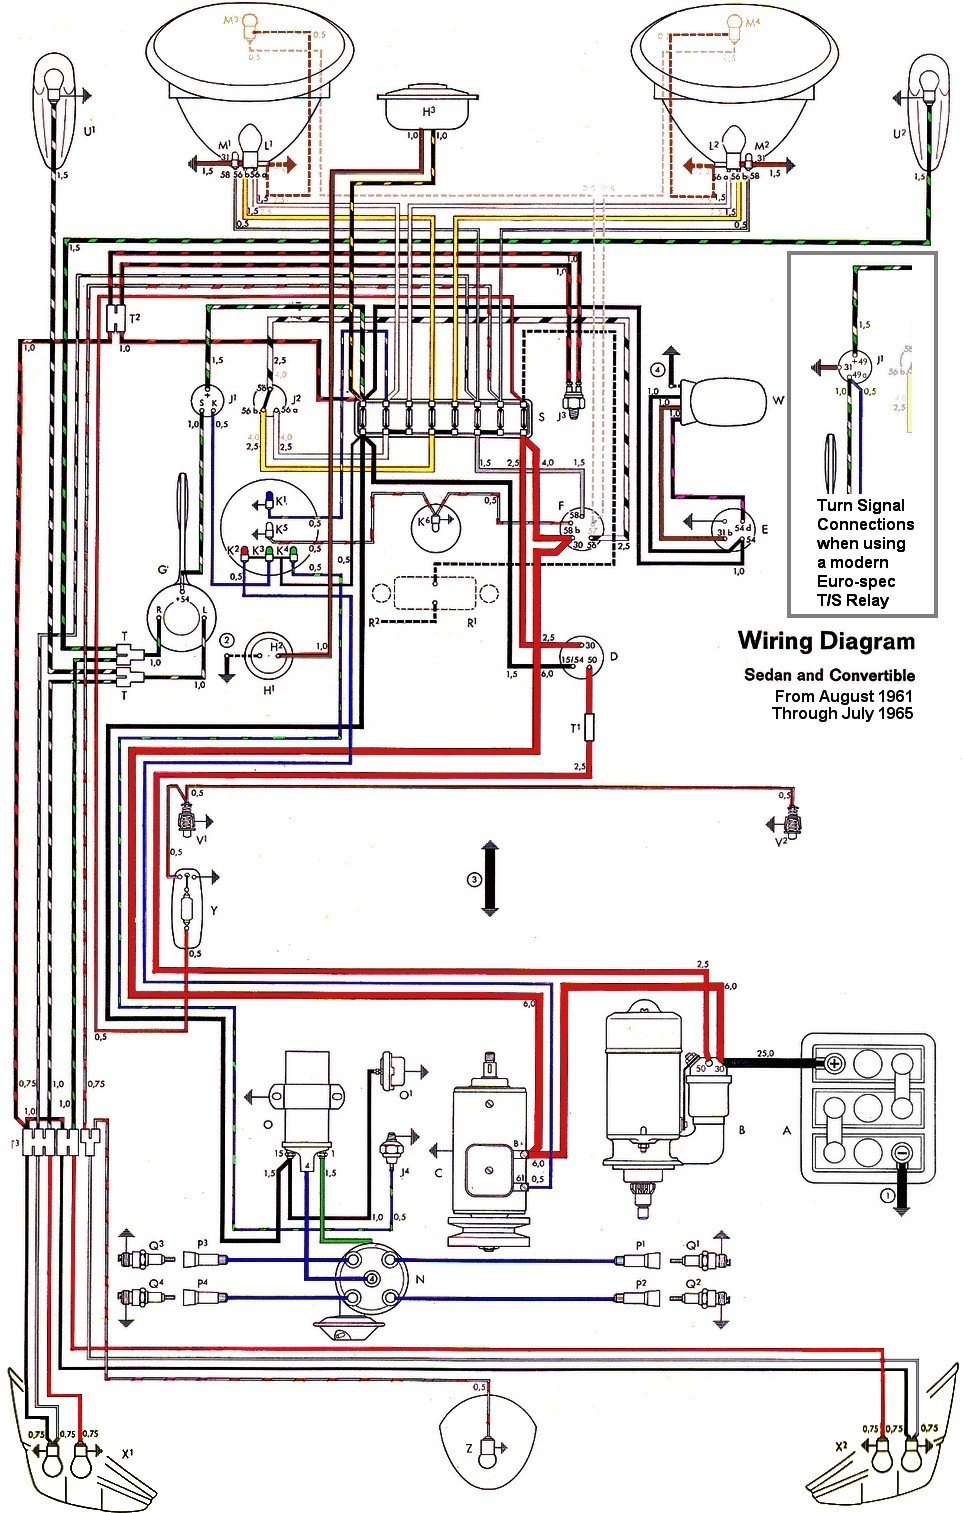 1971 Vw Bug Wiring Diagram Library Bass Buggy